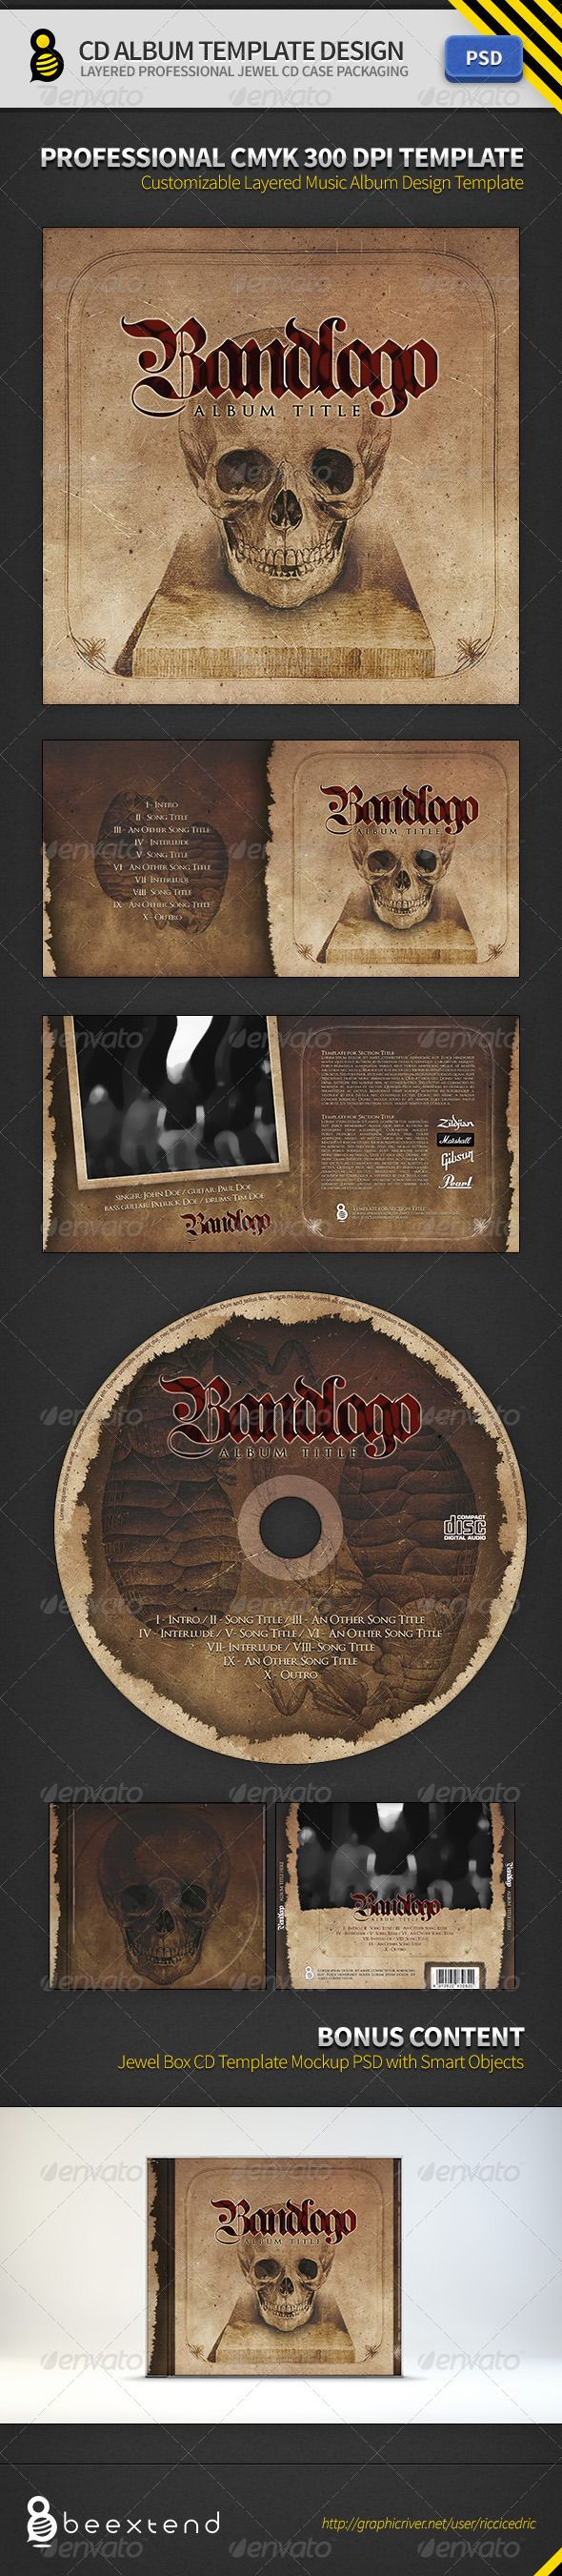 Best Cd  Dvd Artwork Templates Images On   Cd Cover